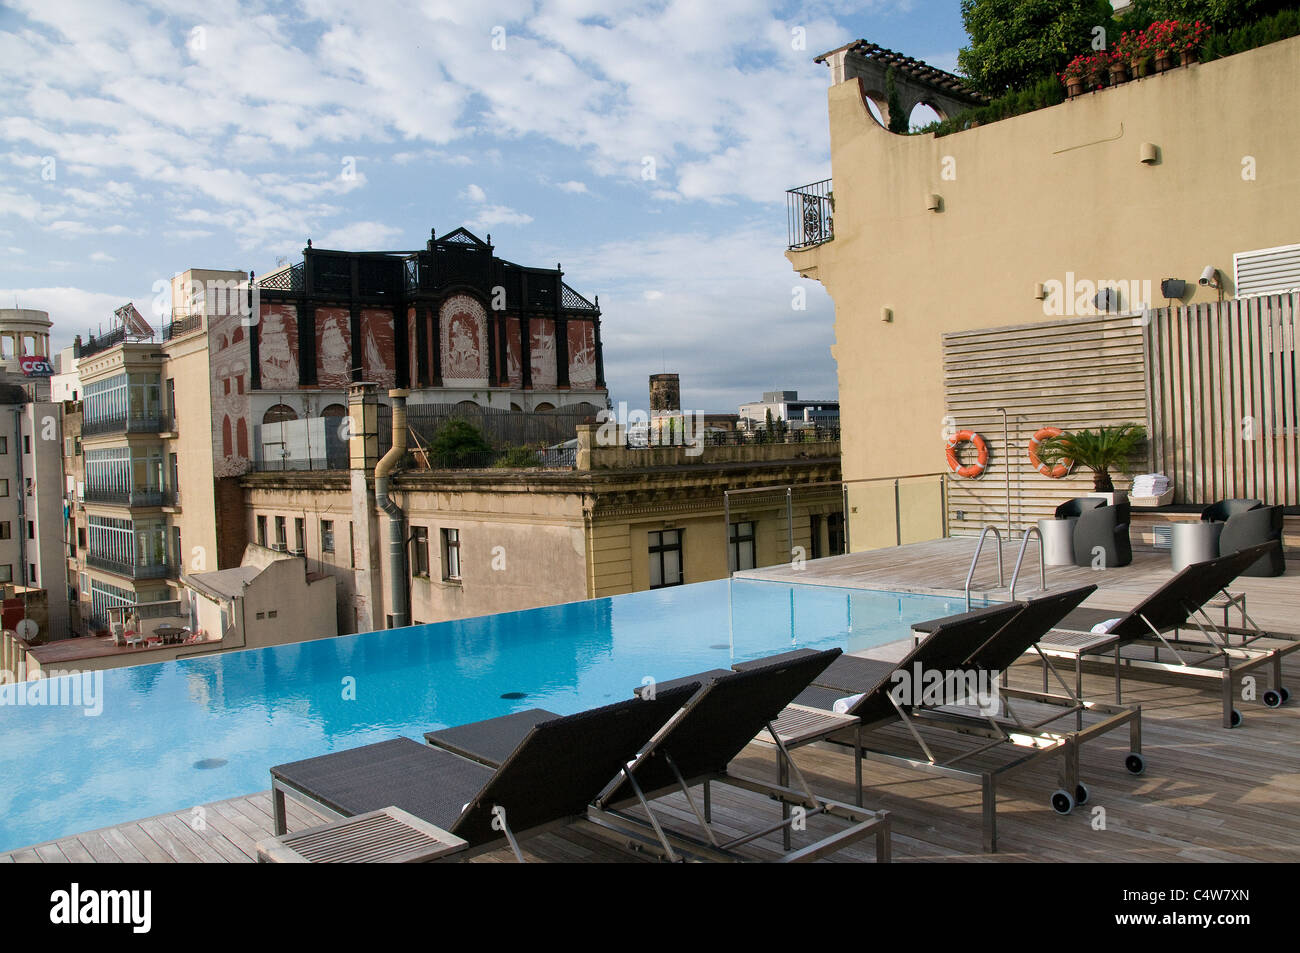 Grand Hotel Central Barcelona Located In The Heart Of Barcelona, The Grand Hotel Central Offers A Stock Photo - Alamy